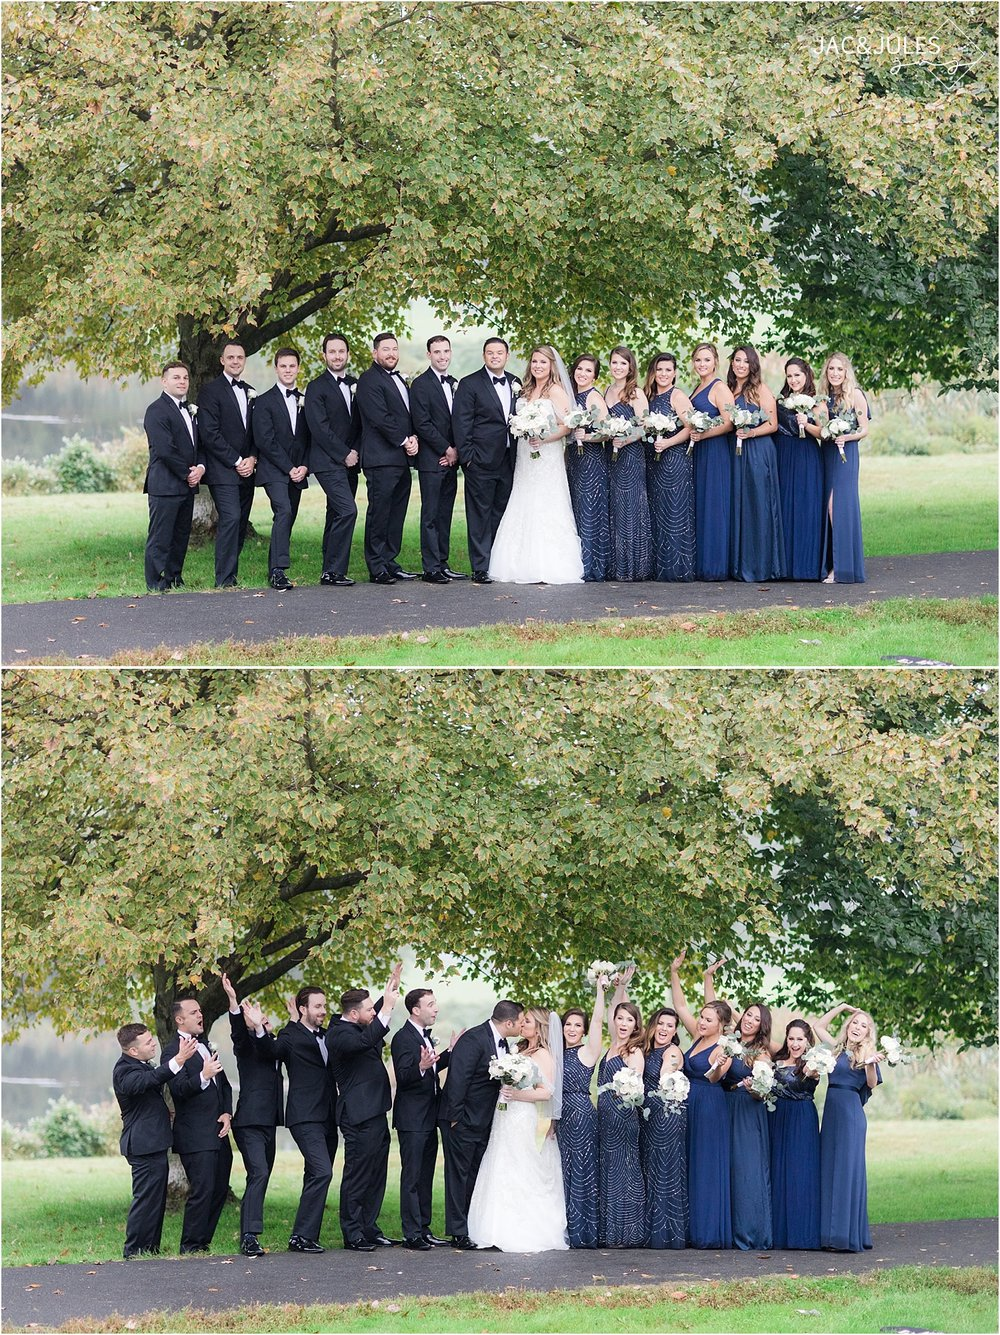 bridal party photos at Briant Park